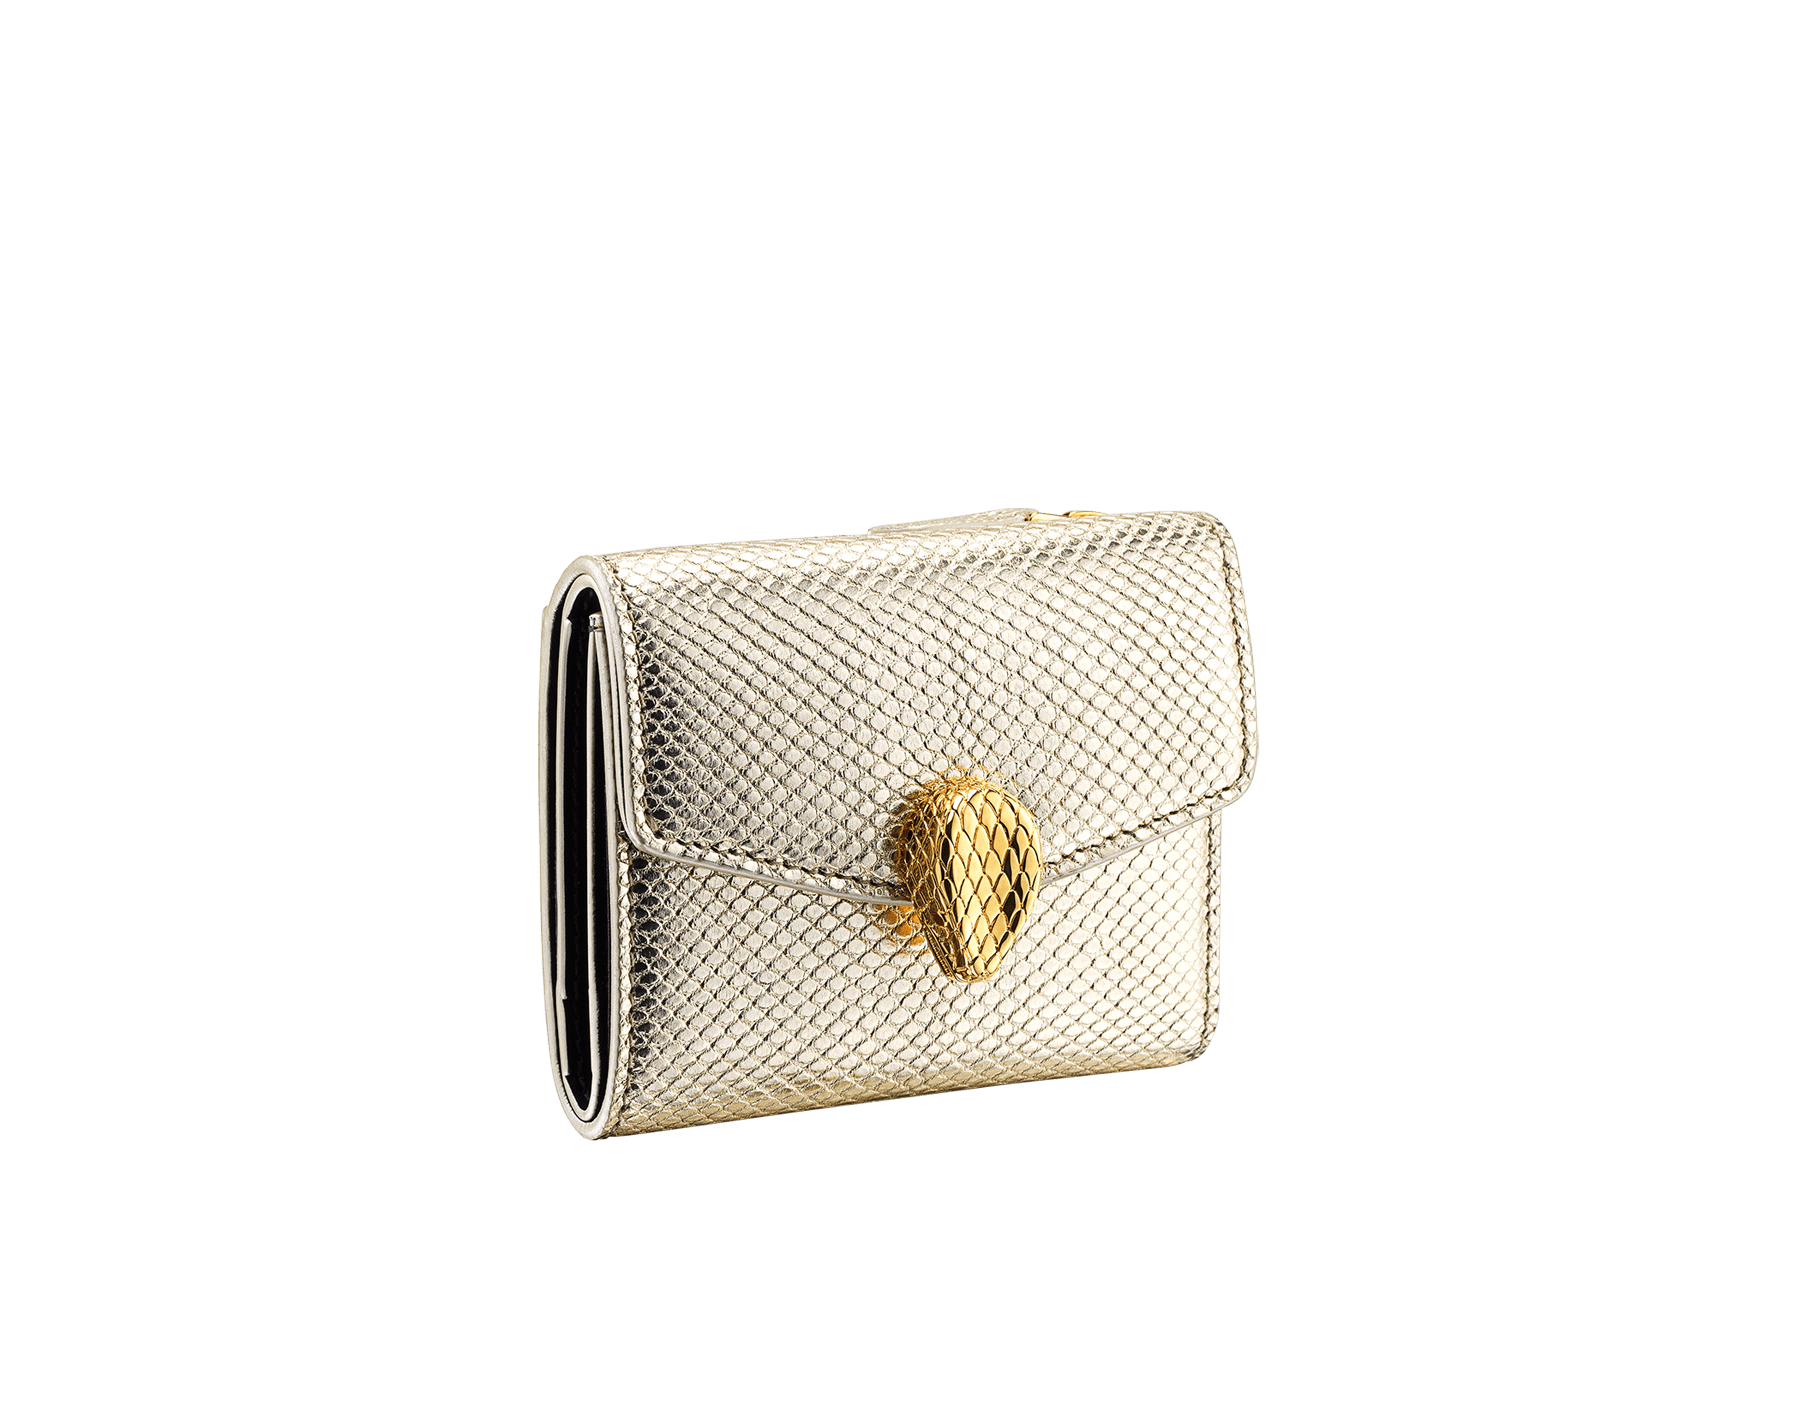 """Slender, compact """"Serpenti Forever"""" wallet in """"Molten"""" gold karung skin and black calfskin, offering a touch of radiance for the Winter Holidays. New Serpenti head closure in gold-plated brass, complete with ruby-red enamel eyes. SEA-SLIMCOMPACT-MoltK image 1"""